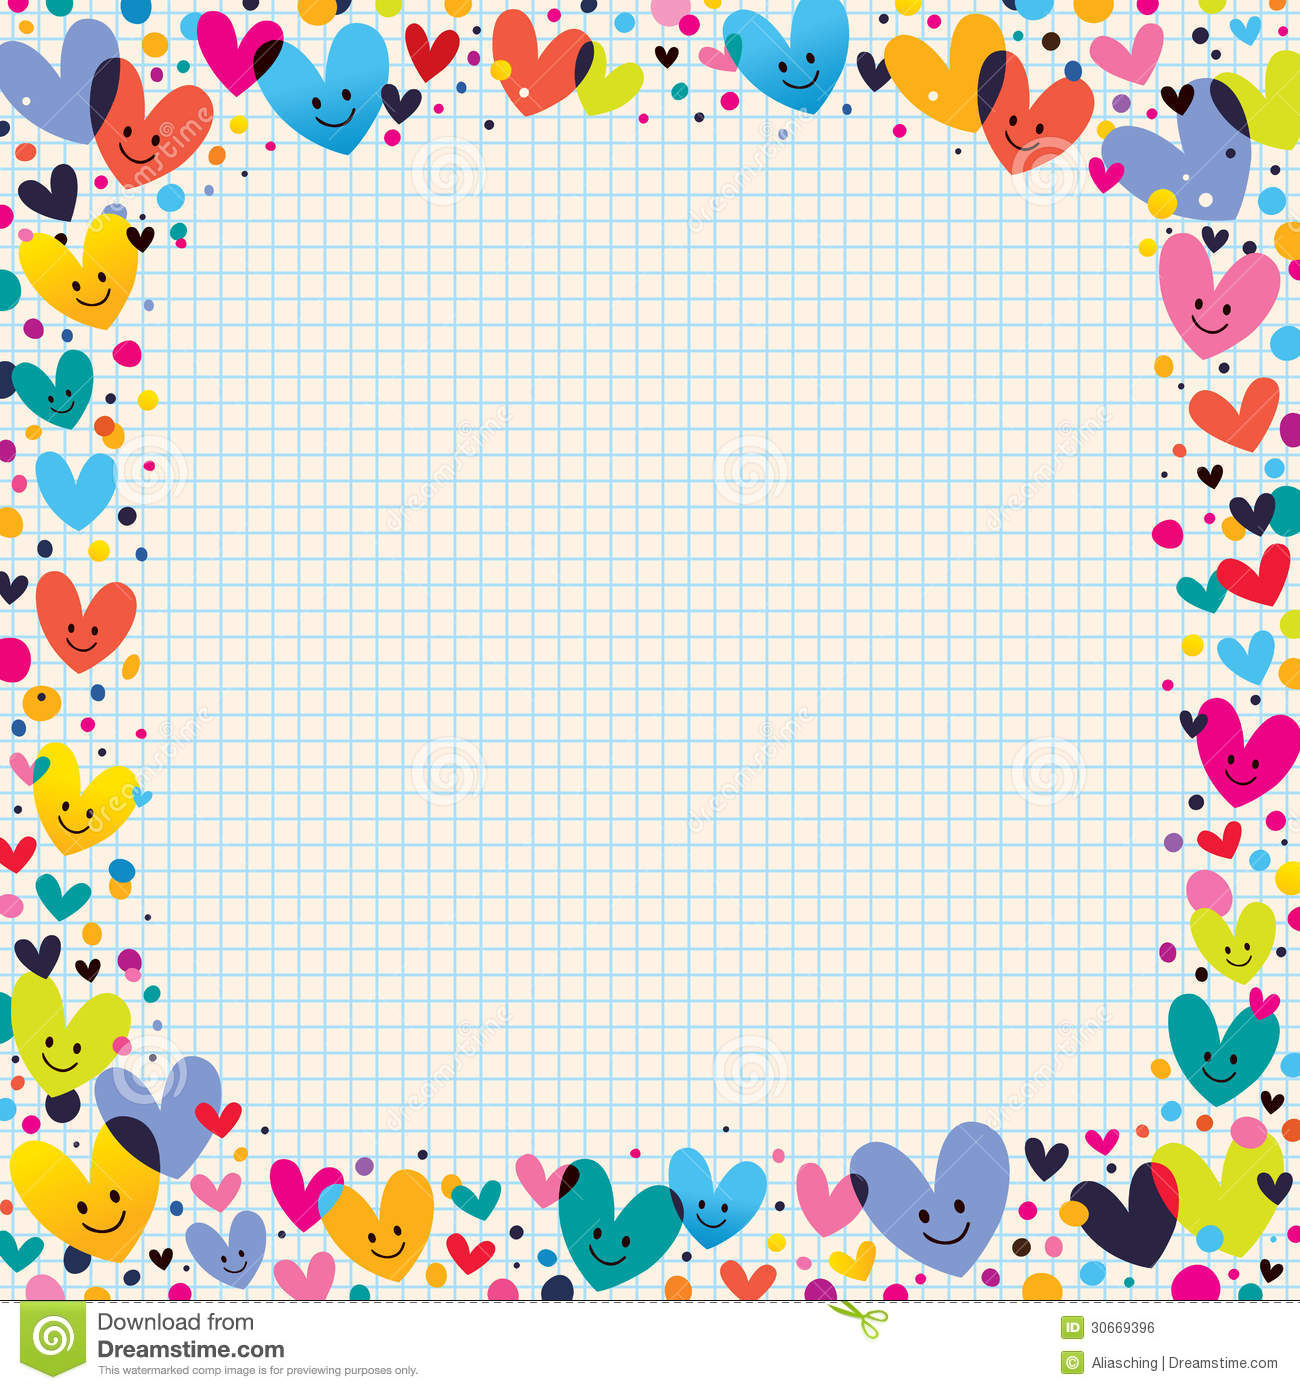 Cute Hearts Border Stock Vector Illustration Of Cartoon